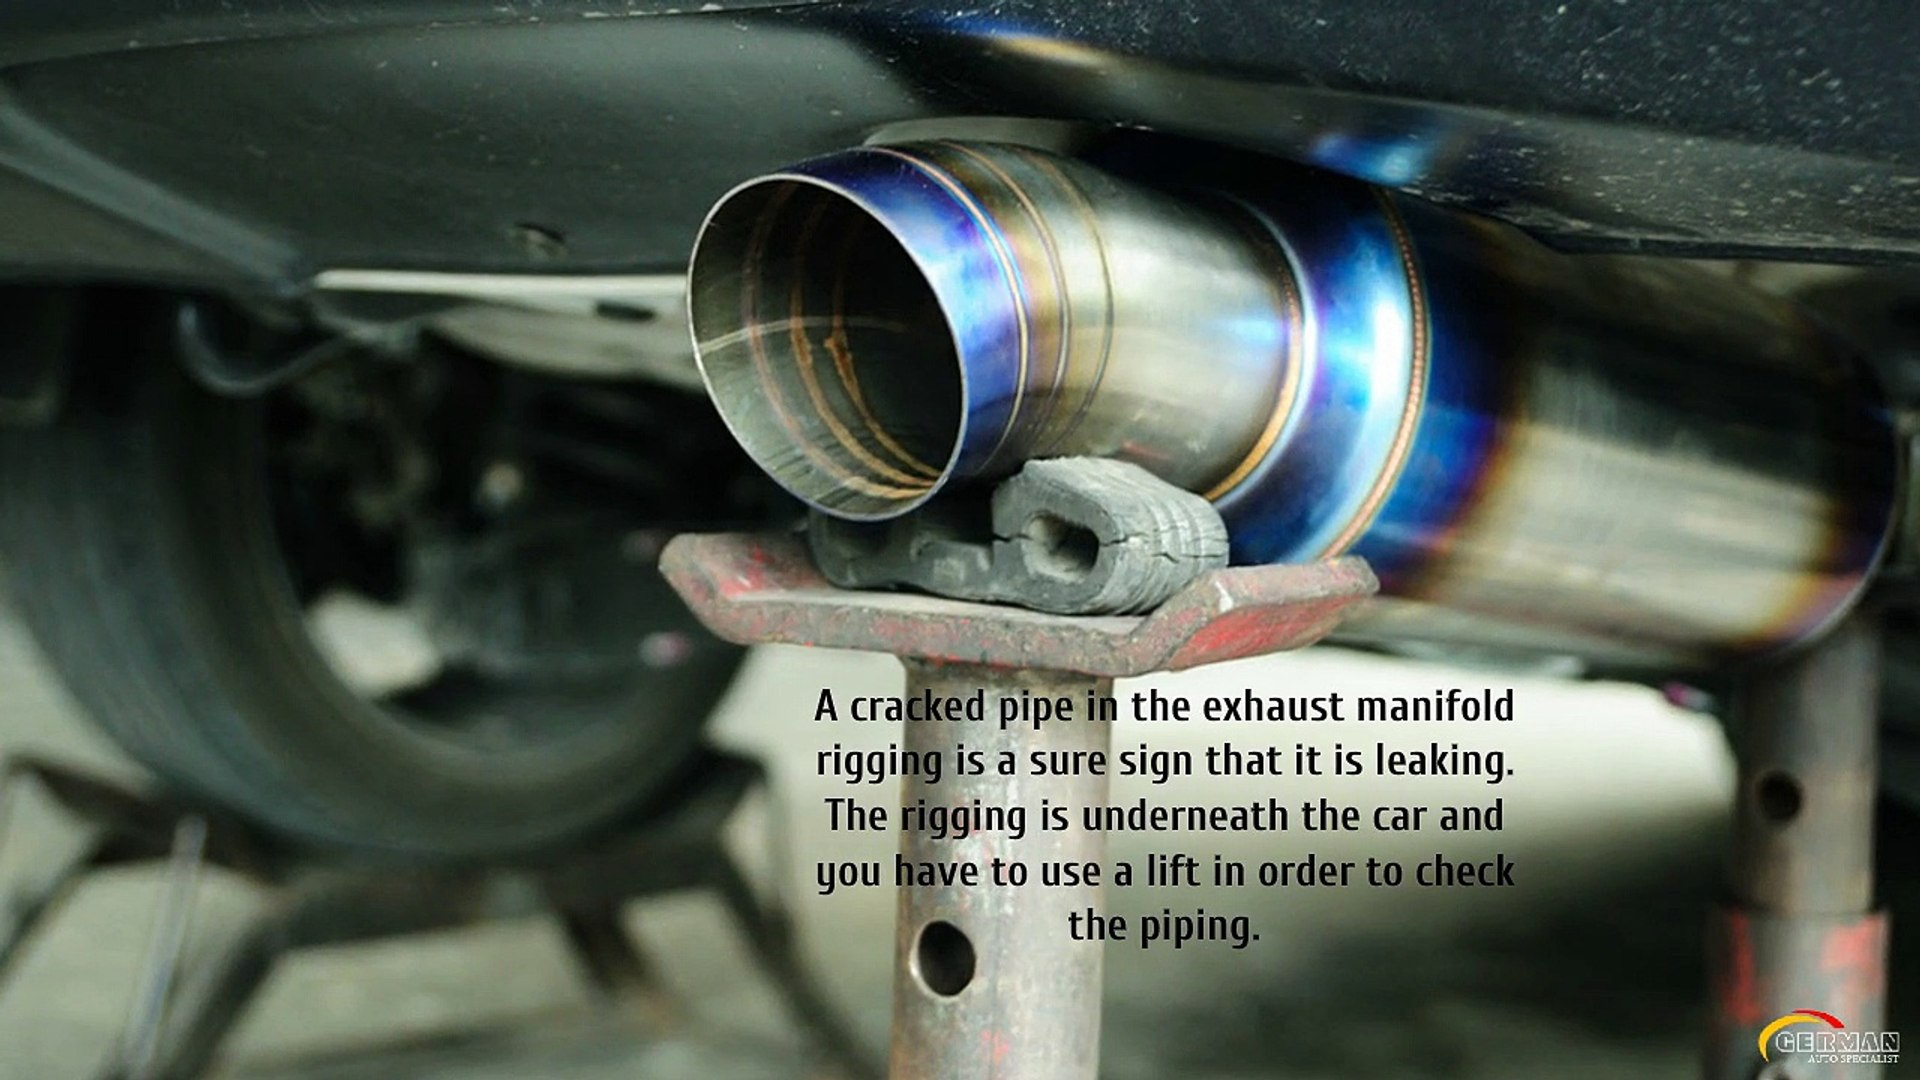 How to Detect Leaks in Your Car's Exhaust Manifold